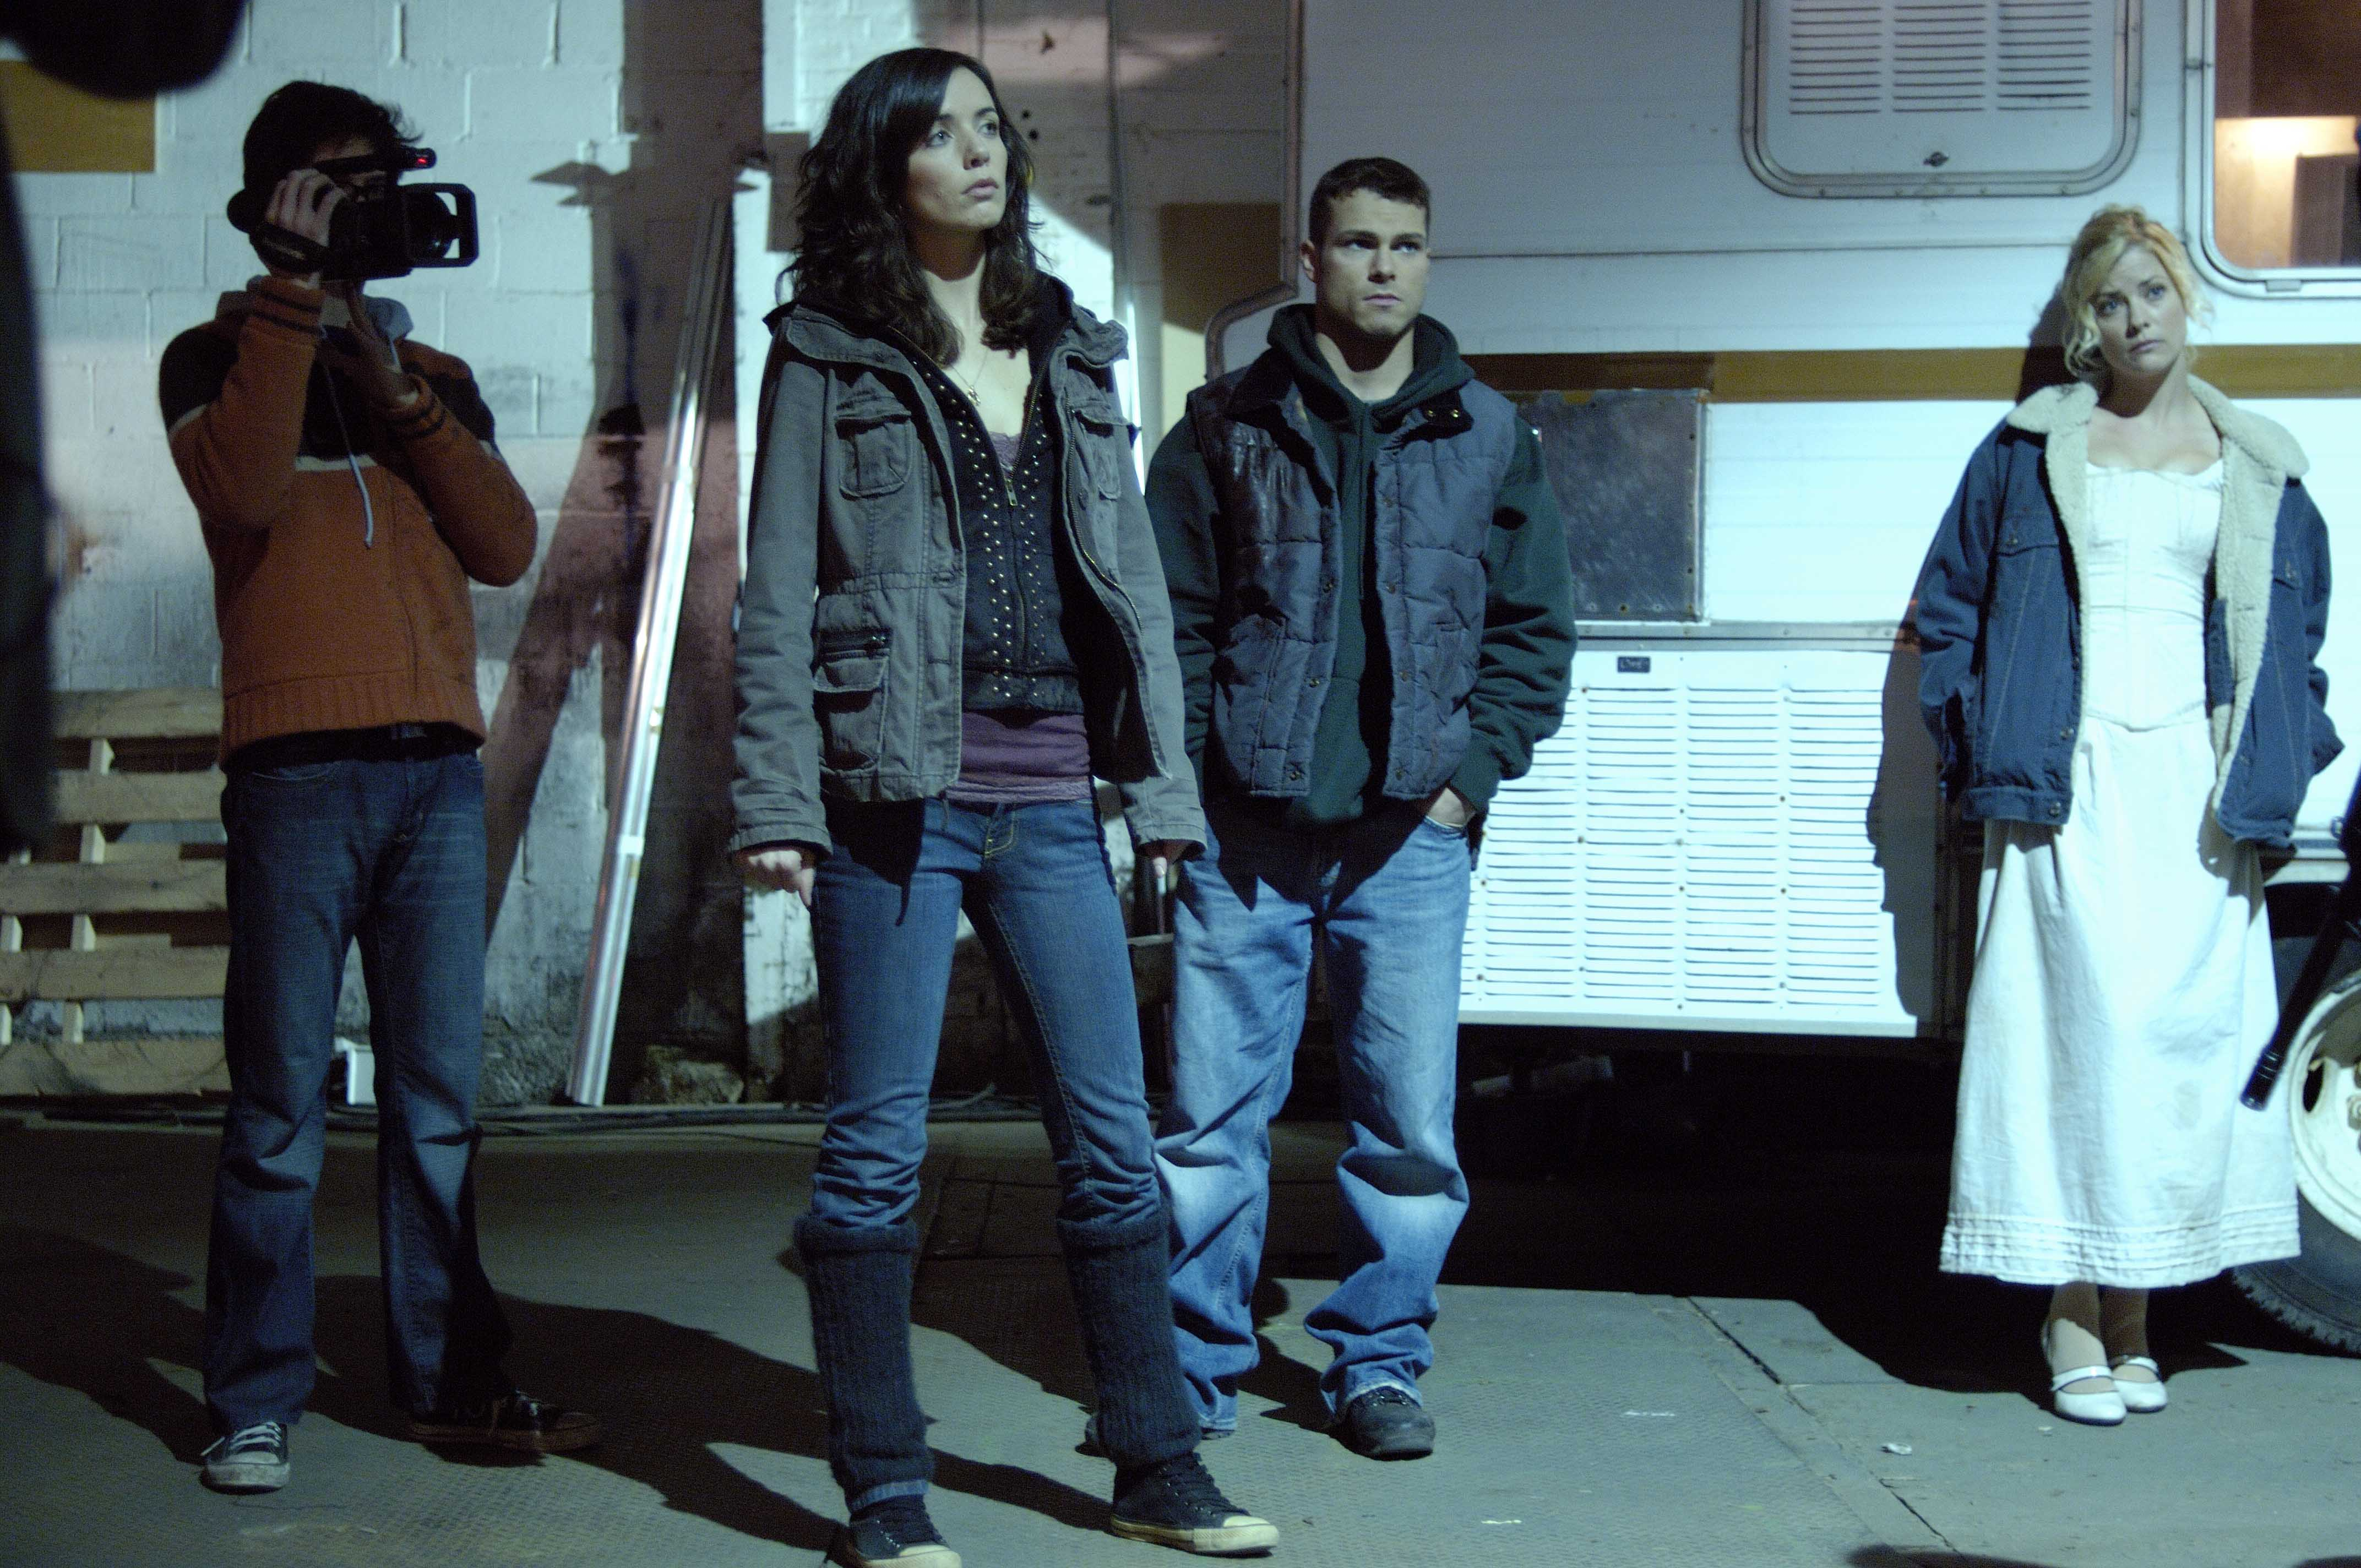 Film school students face the zombie apocalypse - (l to r) Joe Dinicol, Michelle Morgan, Shawn Roberts and Amy Lalonde in Diary of the Dead (2007)